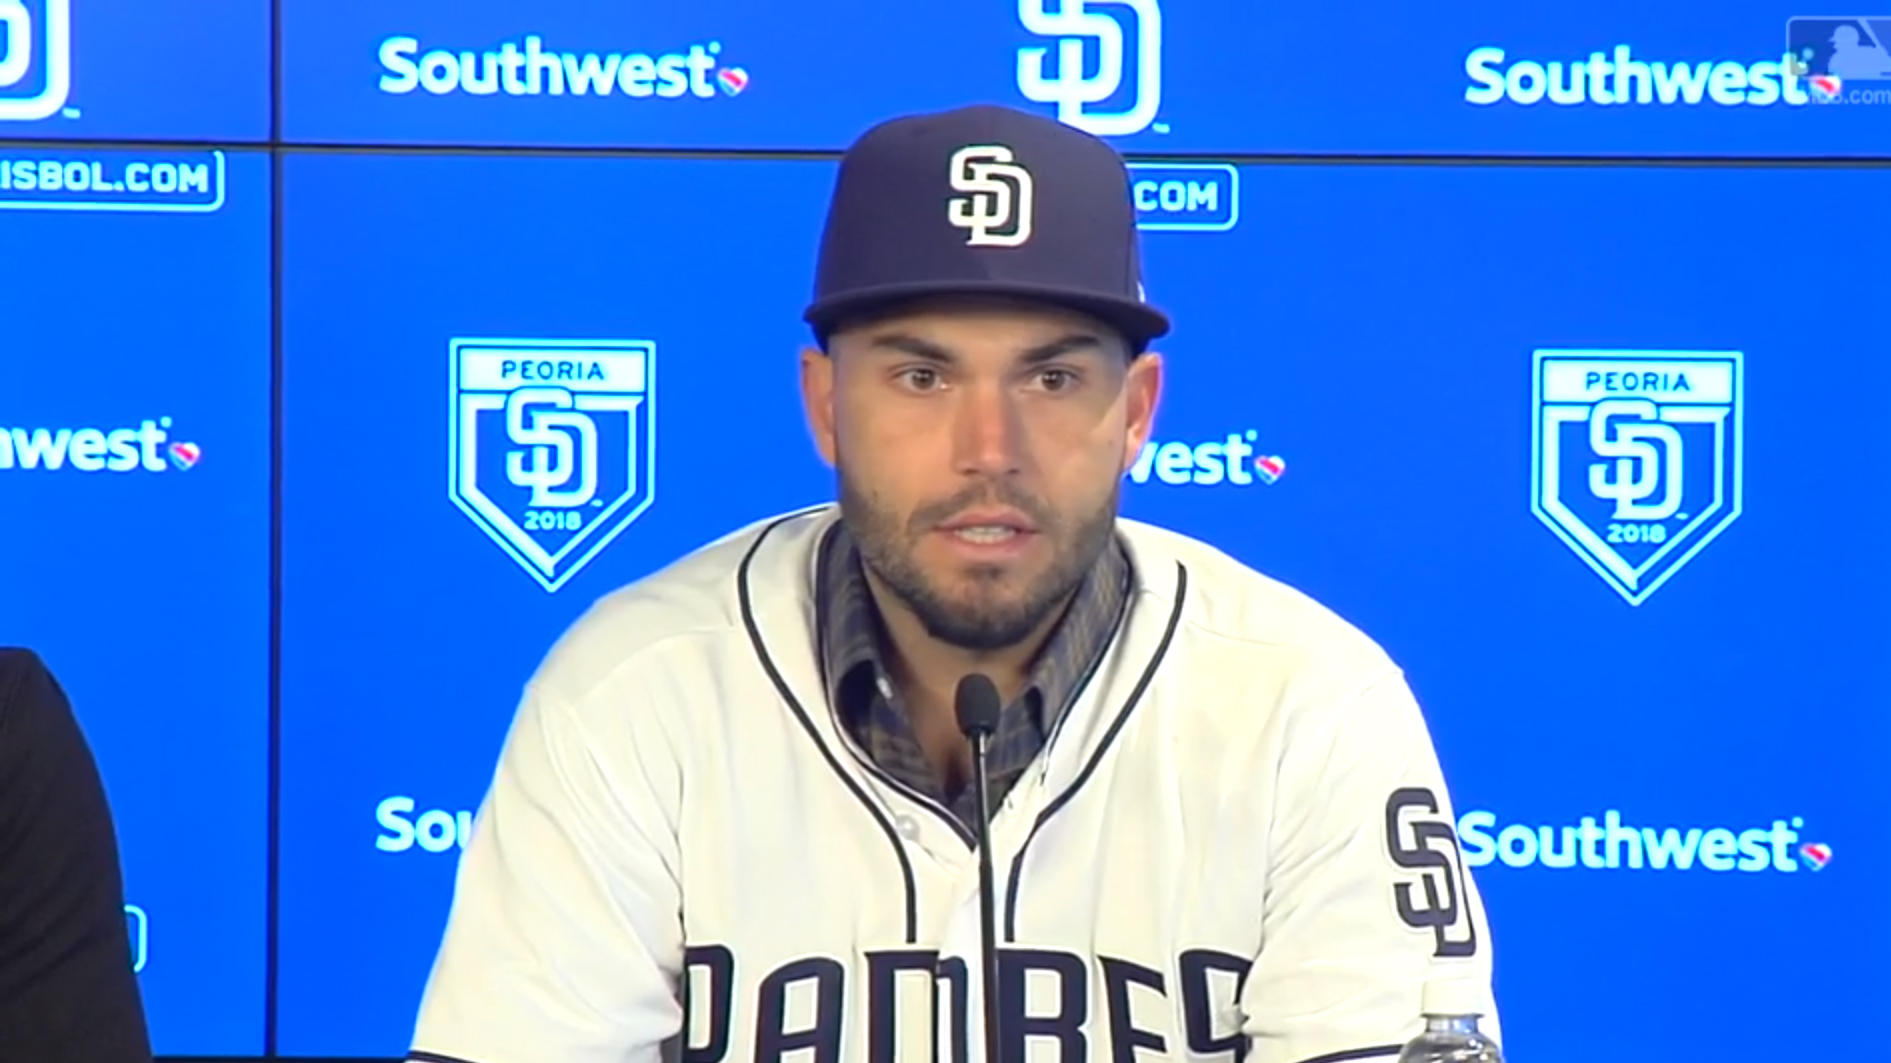 finest selection fc44d 4290c Much Sought-After Eric Hosmer is a Padre - Times of San Diego